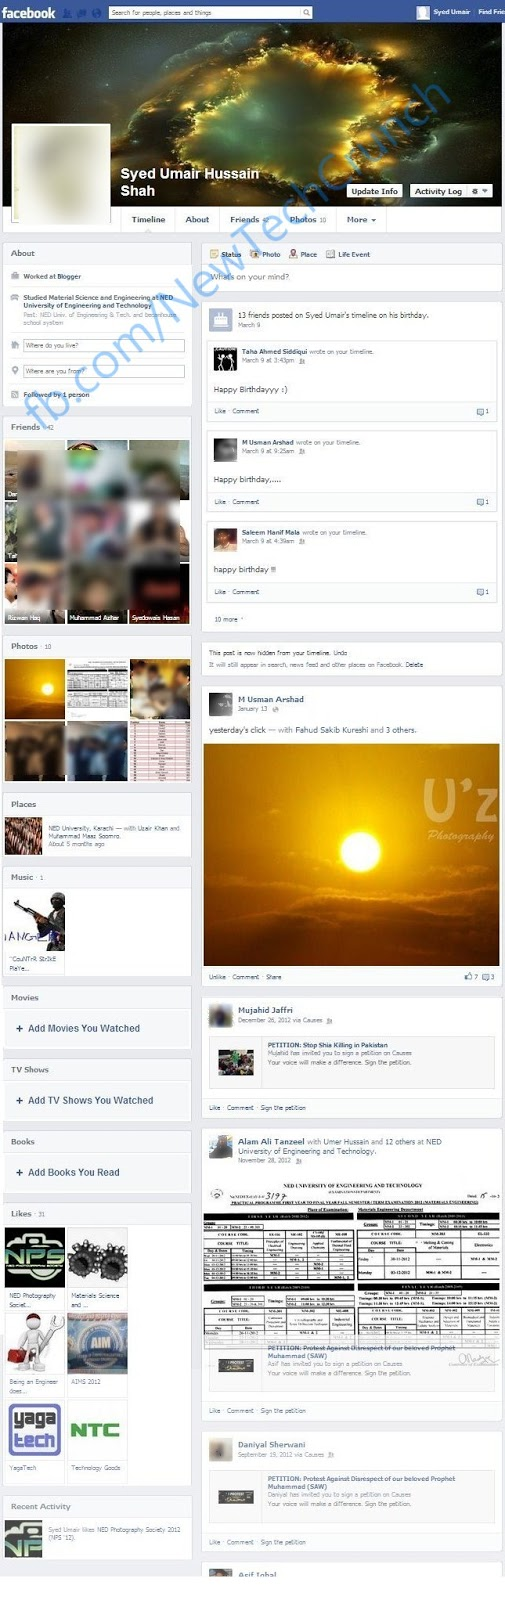 New Facebook Timeline Profile design